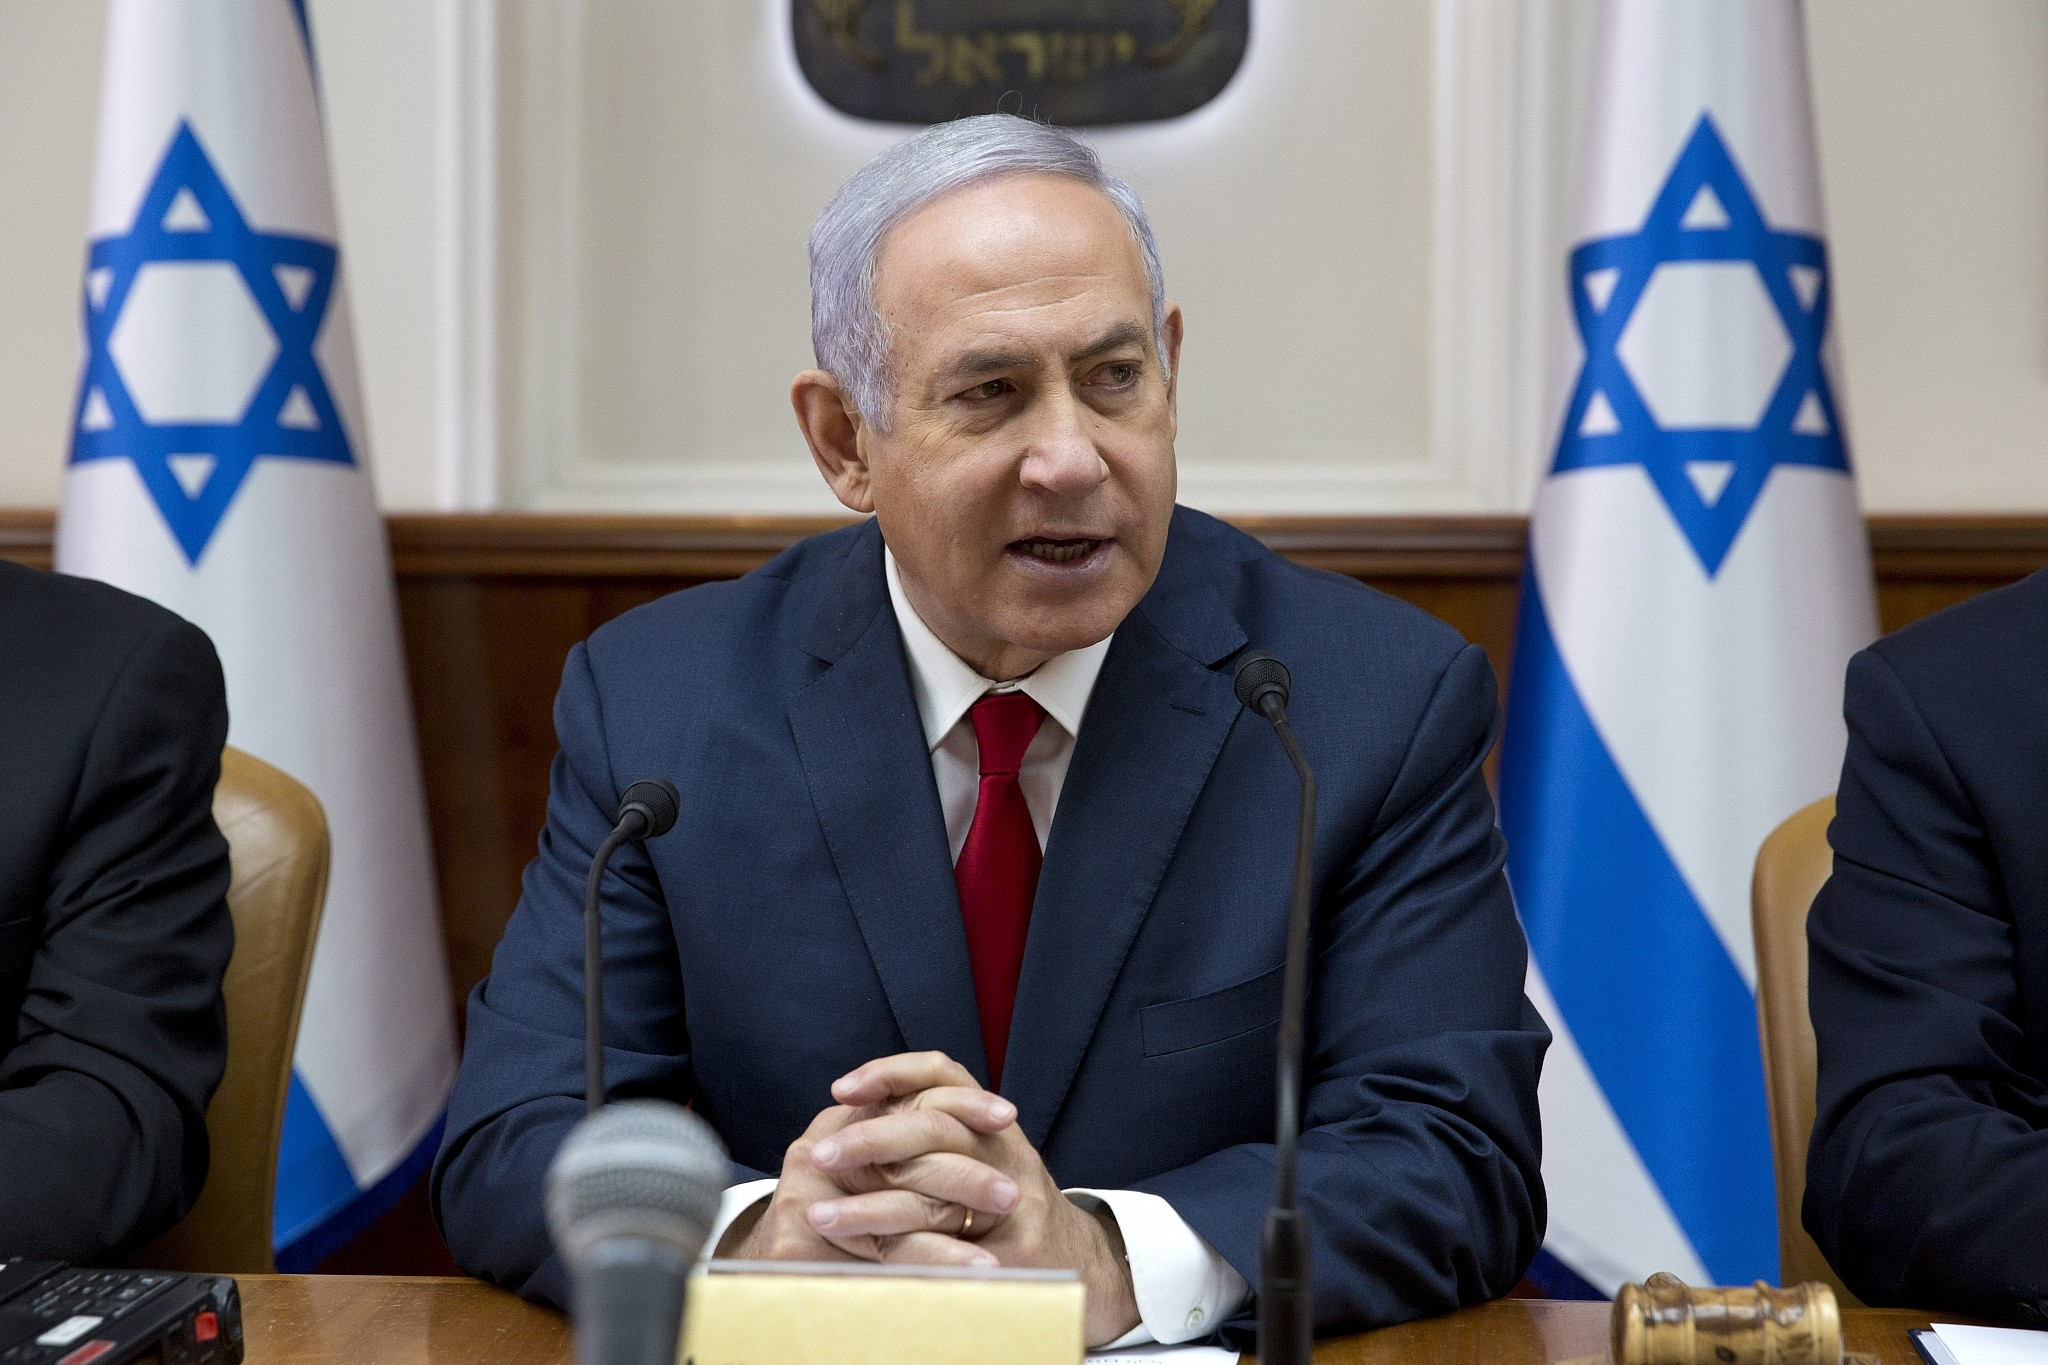 Polish PM cancels trip to Israel after Netanyahu's Holocaust comment